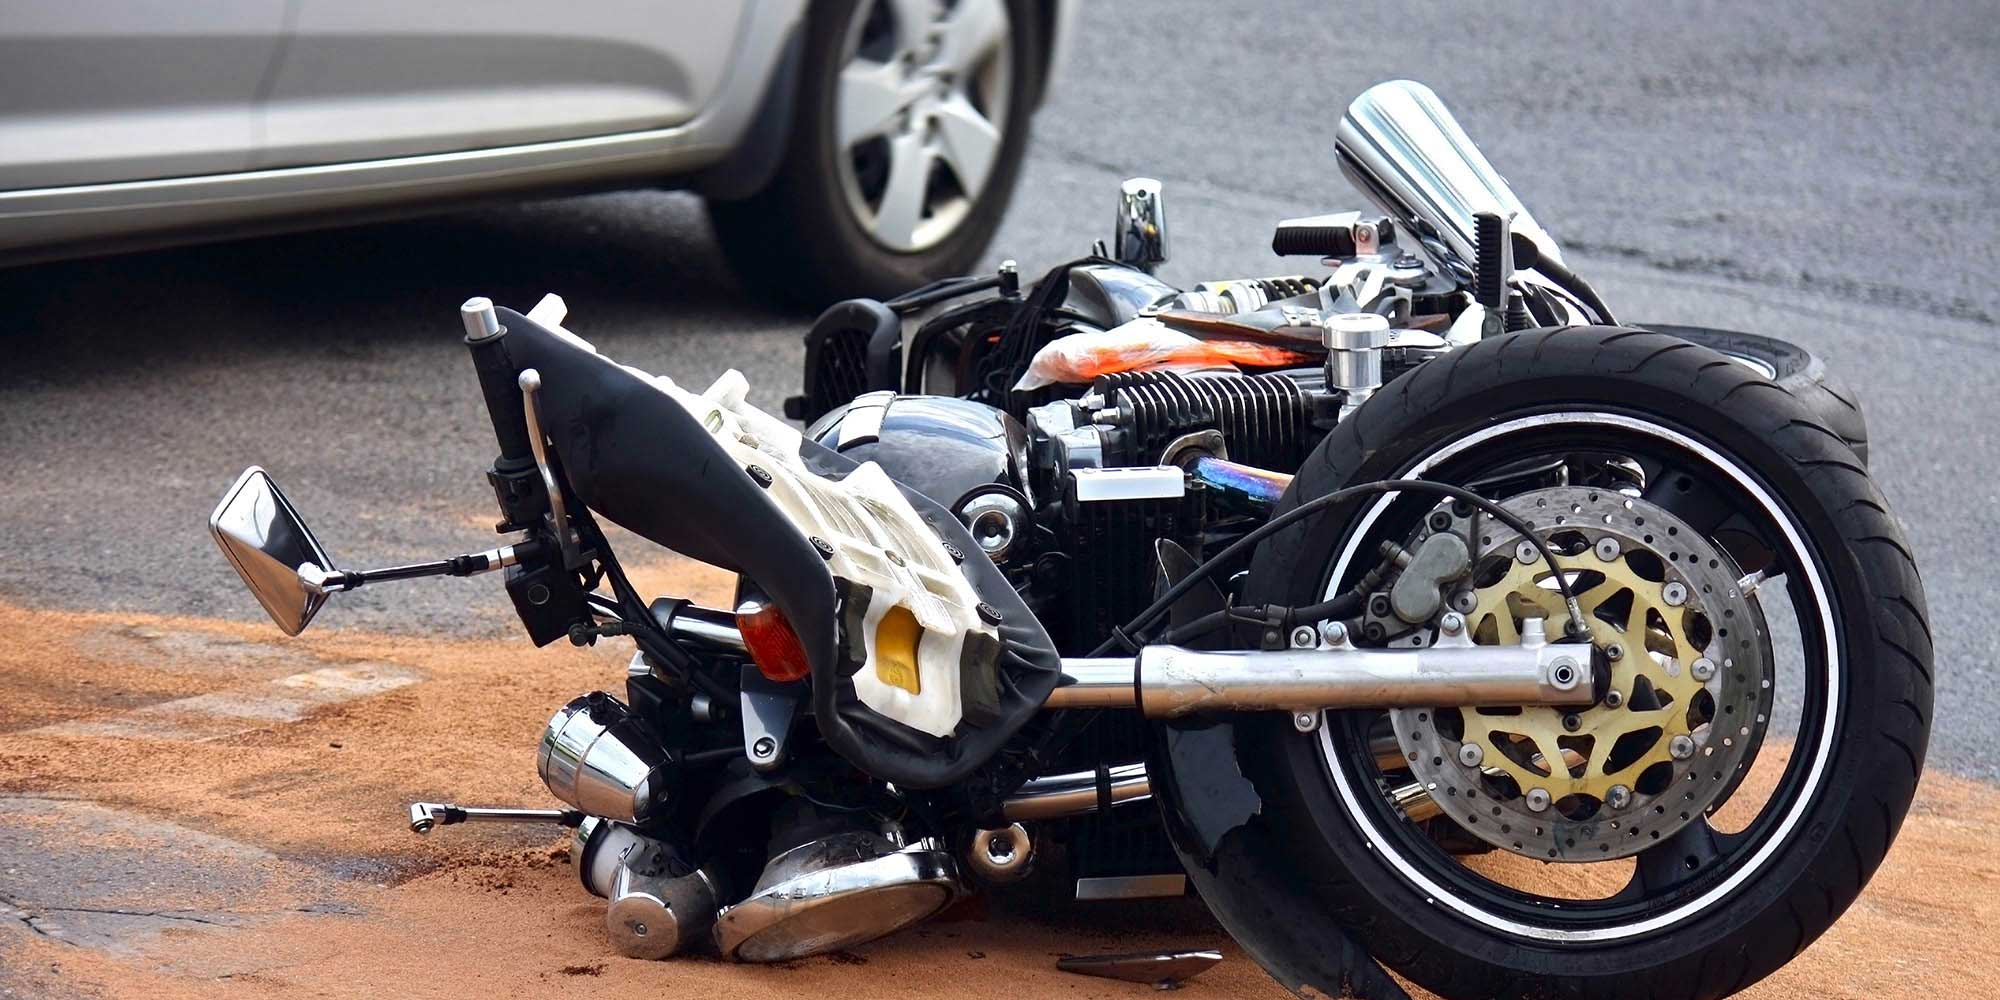 Motorcycle Accident Attorney | Motorcycle Accident Lawyer